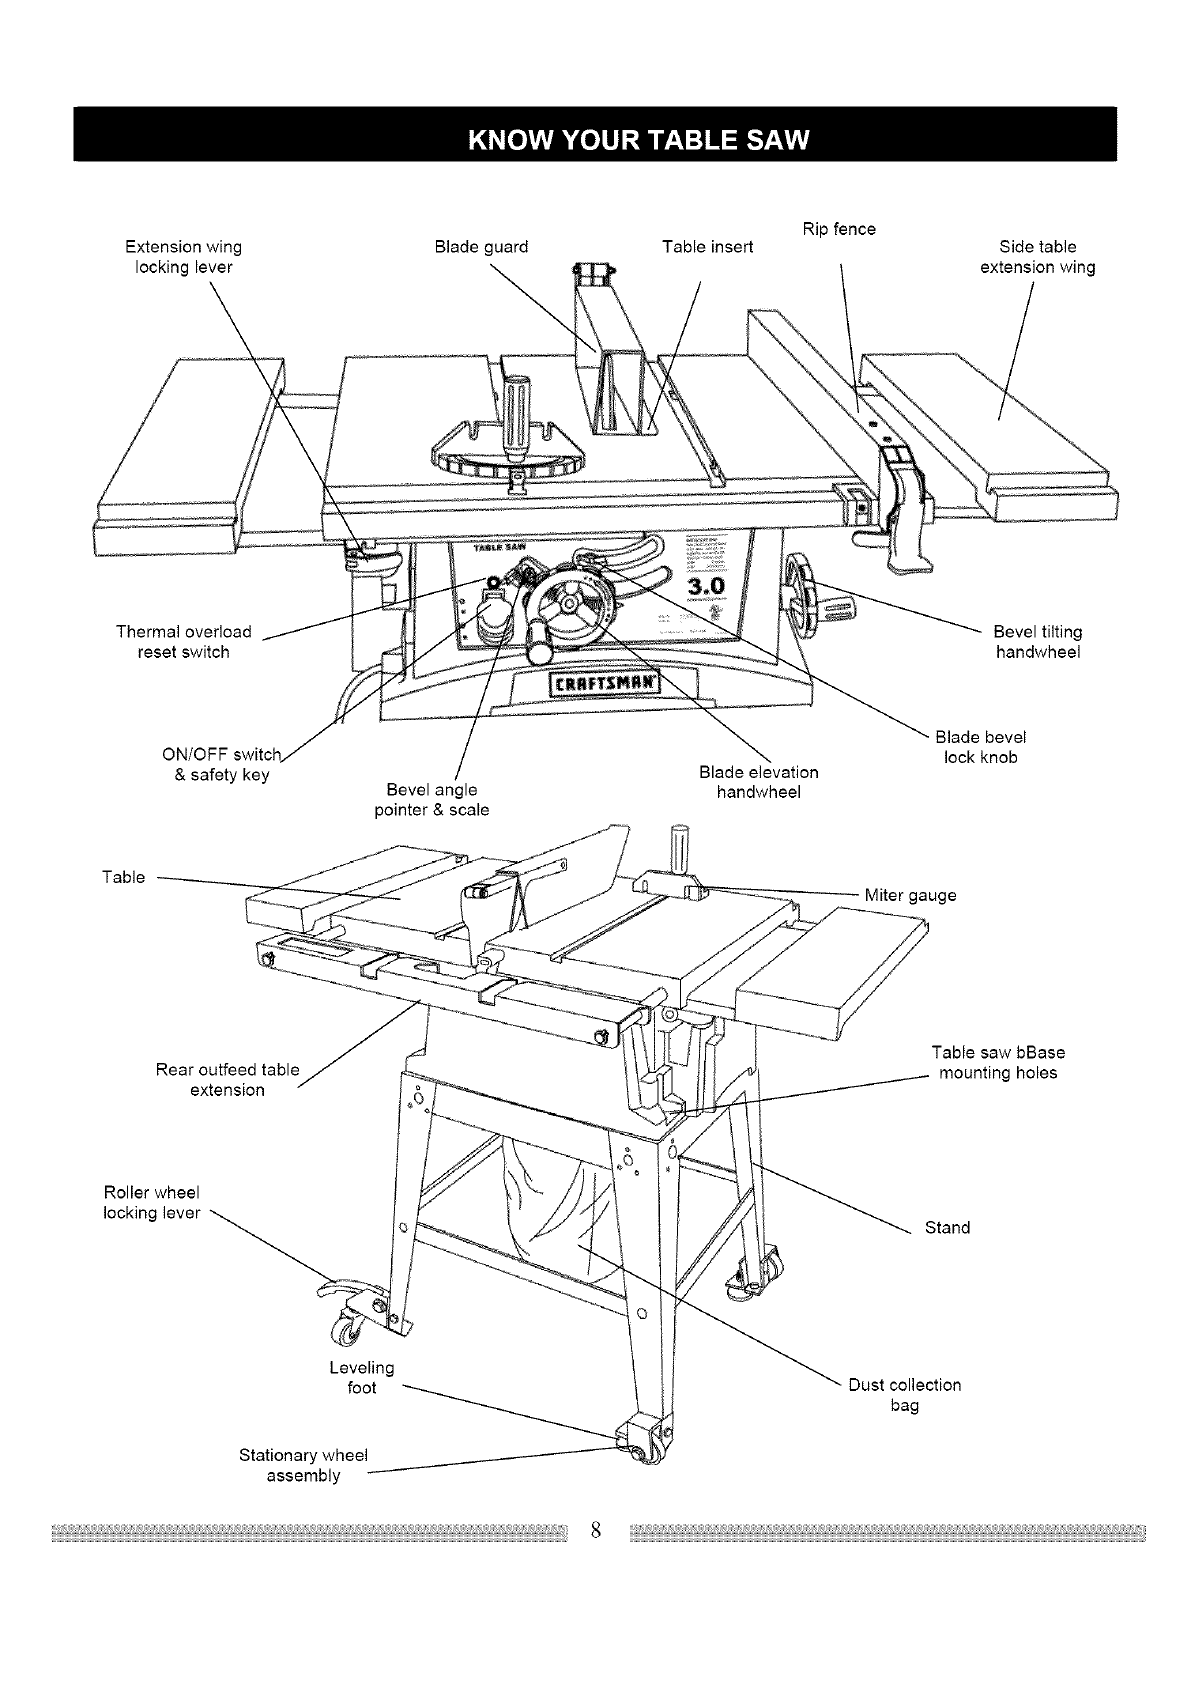 Page 8 of Craftsman Saw 137.248830 User Guide